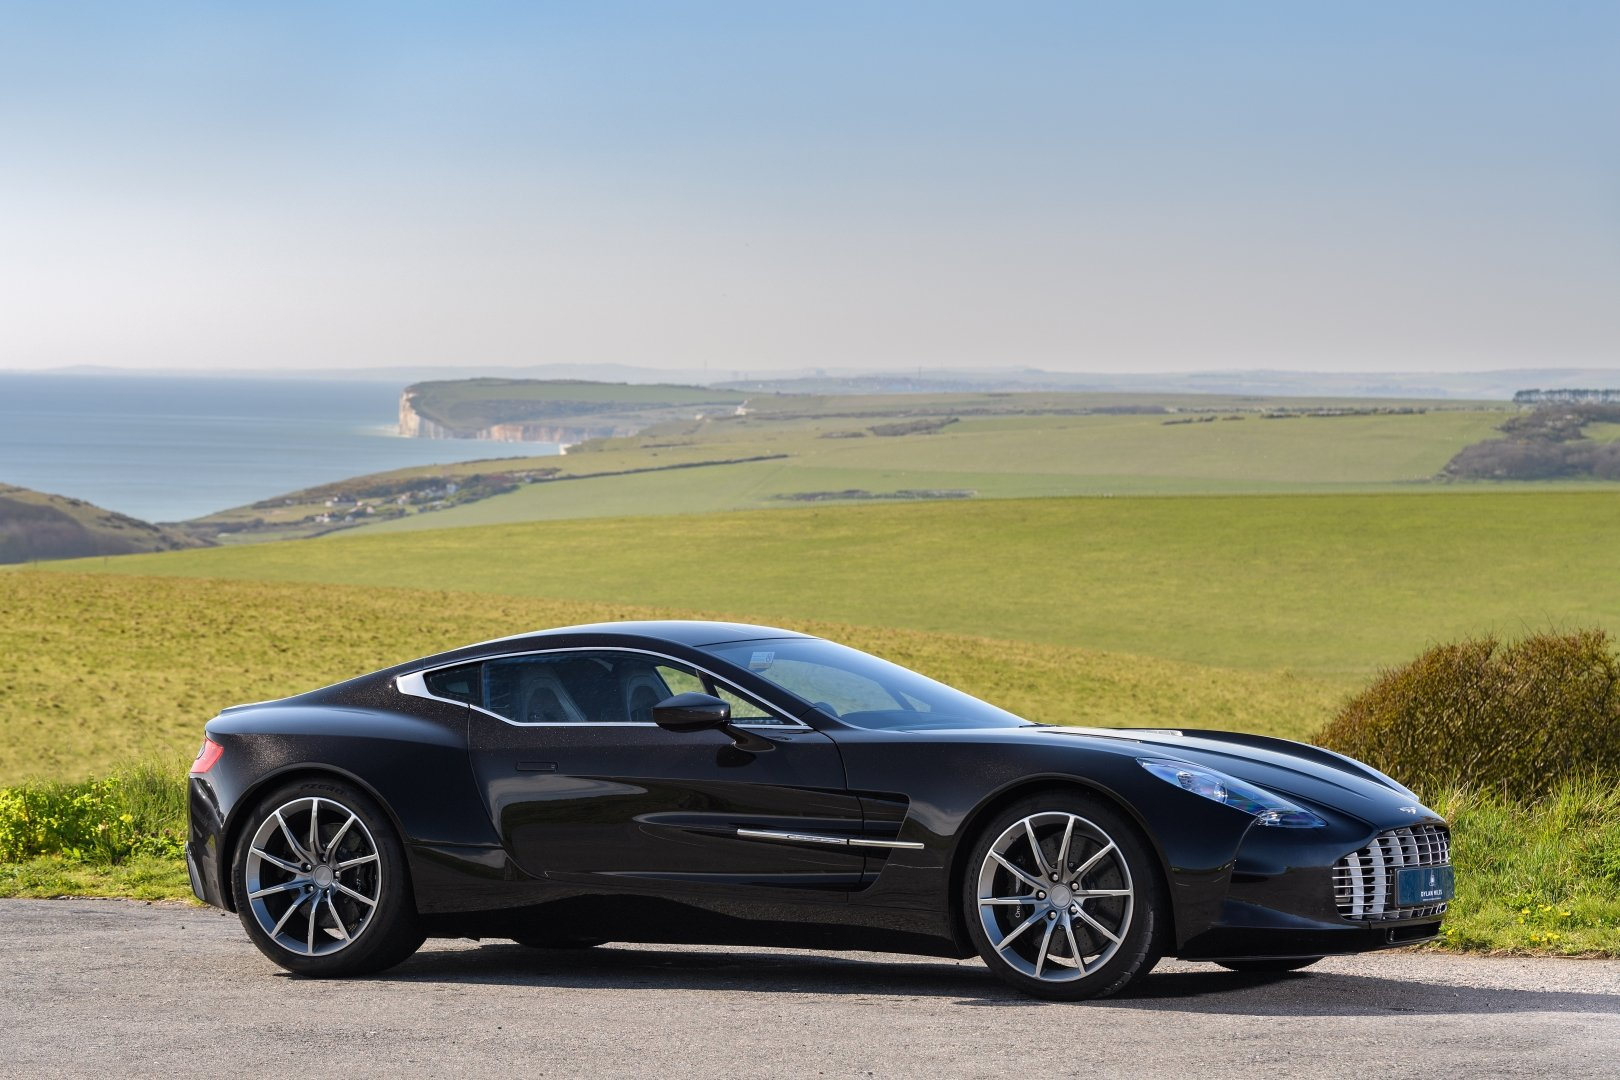 Aston Martin One-77 For Sale >> 2012 Aston Martin One 77 For Sale Car And Classic